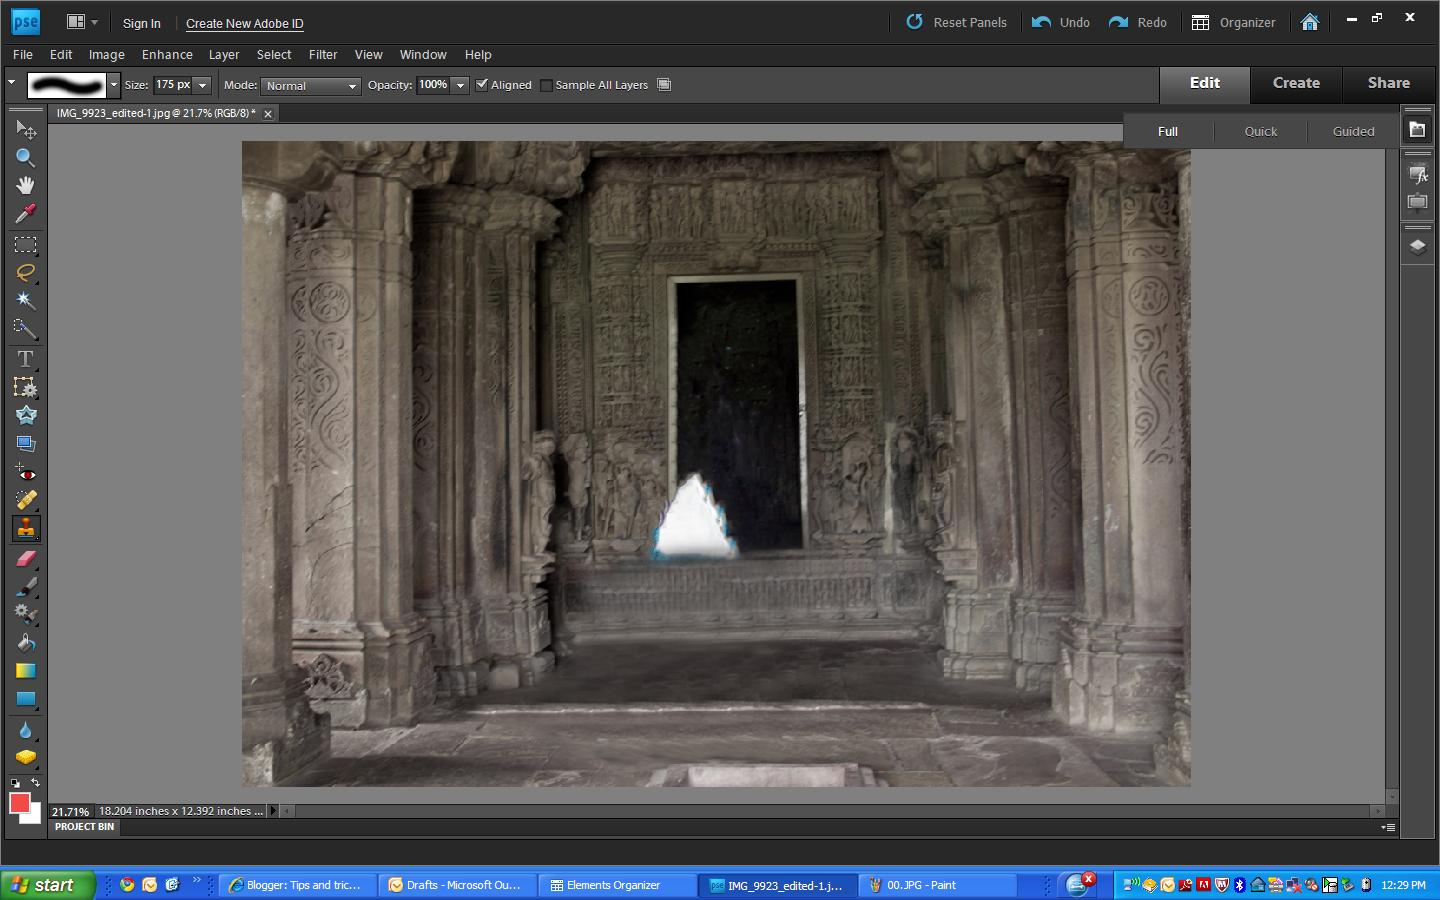 Tips and tricks for photoshop elements how to remove an object tips and tricks for photoshop elements how to remove an object from a scene and create background content to fill the hole using pse9 baditri Images